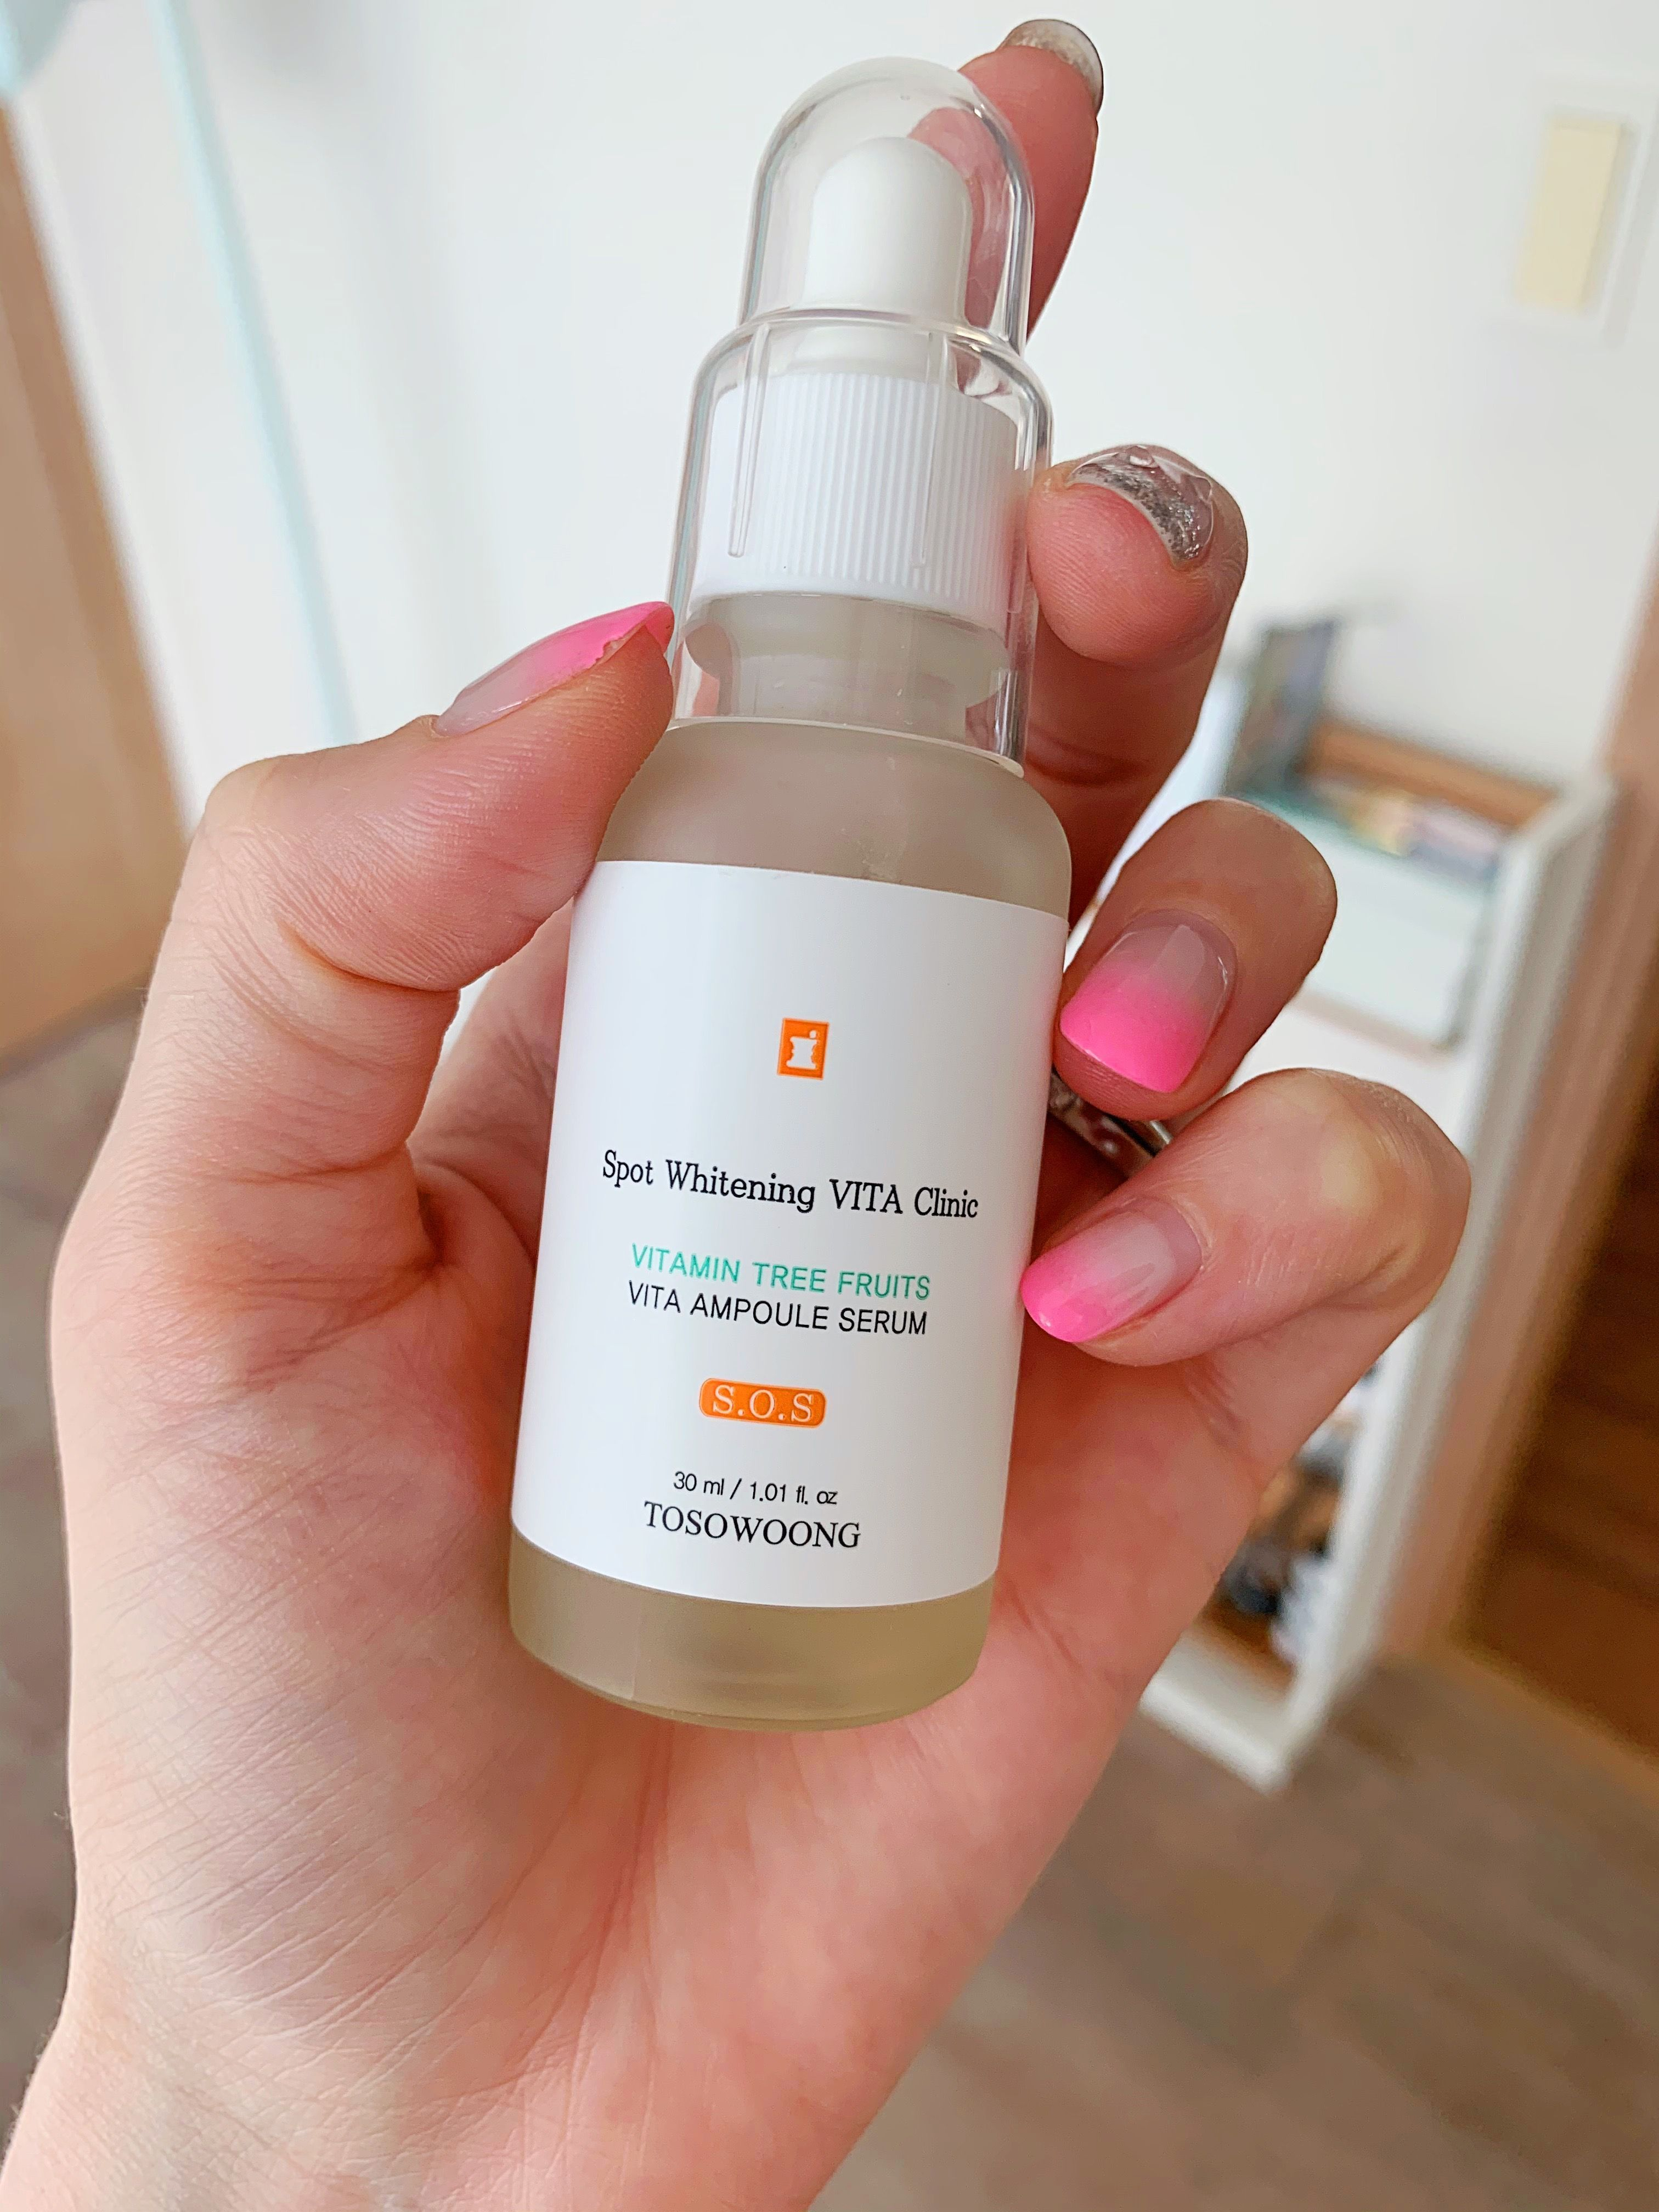 This serum is packed full of brightening Vitamin C, Niacinamide, Licorice and Sea Buckthorn fruit extracts to lighten up dull skin tone, pigmentation, melasma and more. #brightening #skinbrightening #brighteningskincare #brighteningserum #serum #vitaminc #vitamincserum #vitamincampoule #tosowoong #stylestory #australia #dullskin #pigmentation #melasma #seabuckthorn #koreanskincare #koreanskincareproducts #koreanbeautyproducts